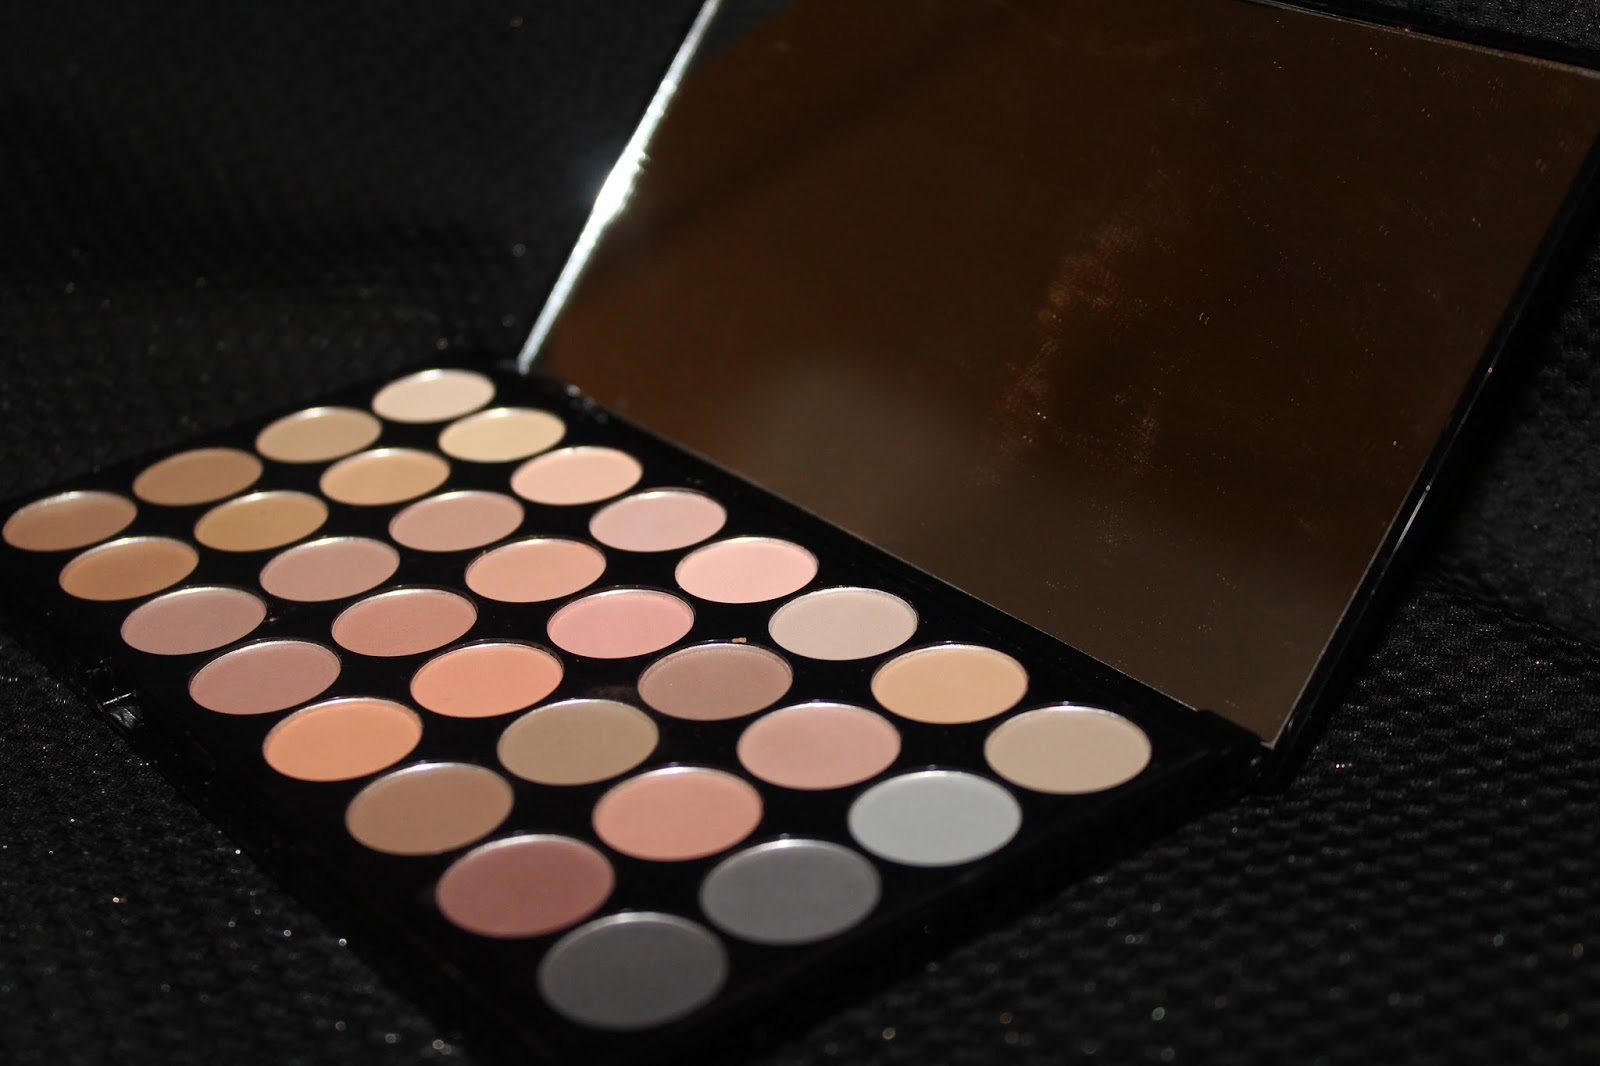 Ultra 32 eyeshadow palette - Beyond Flawless (Neutral Shimmer Shades)